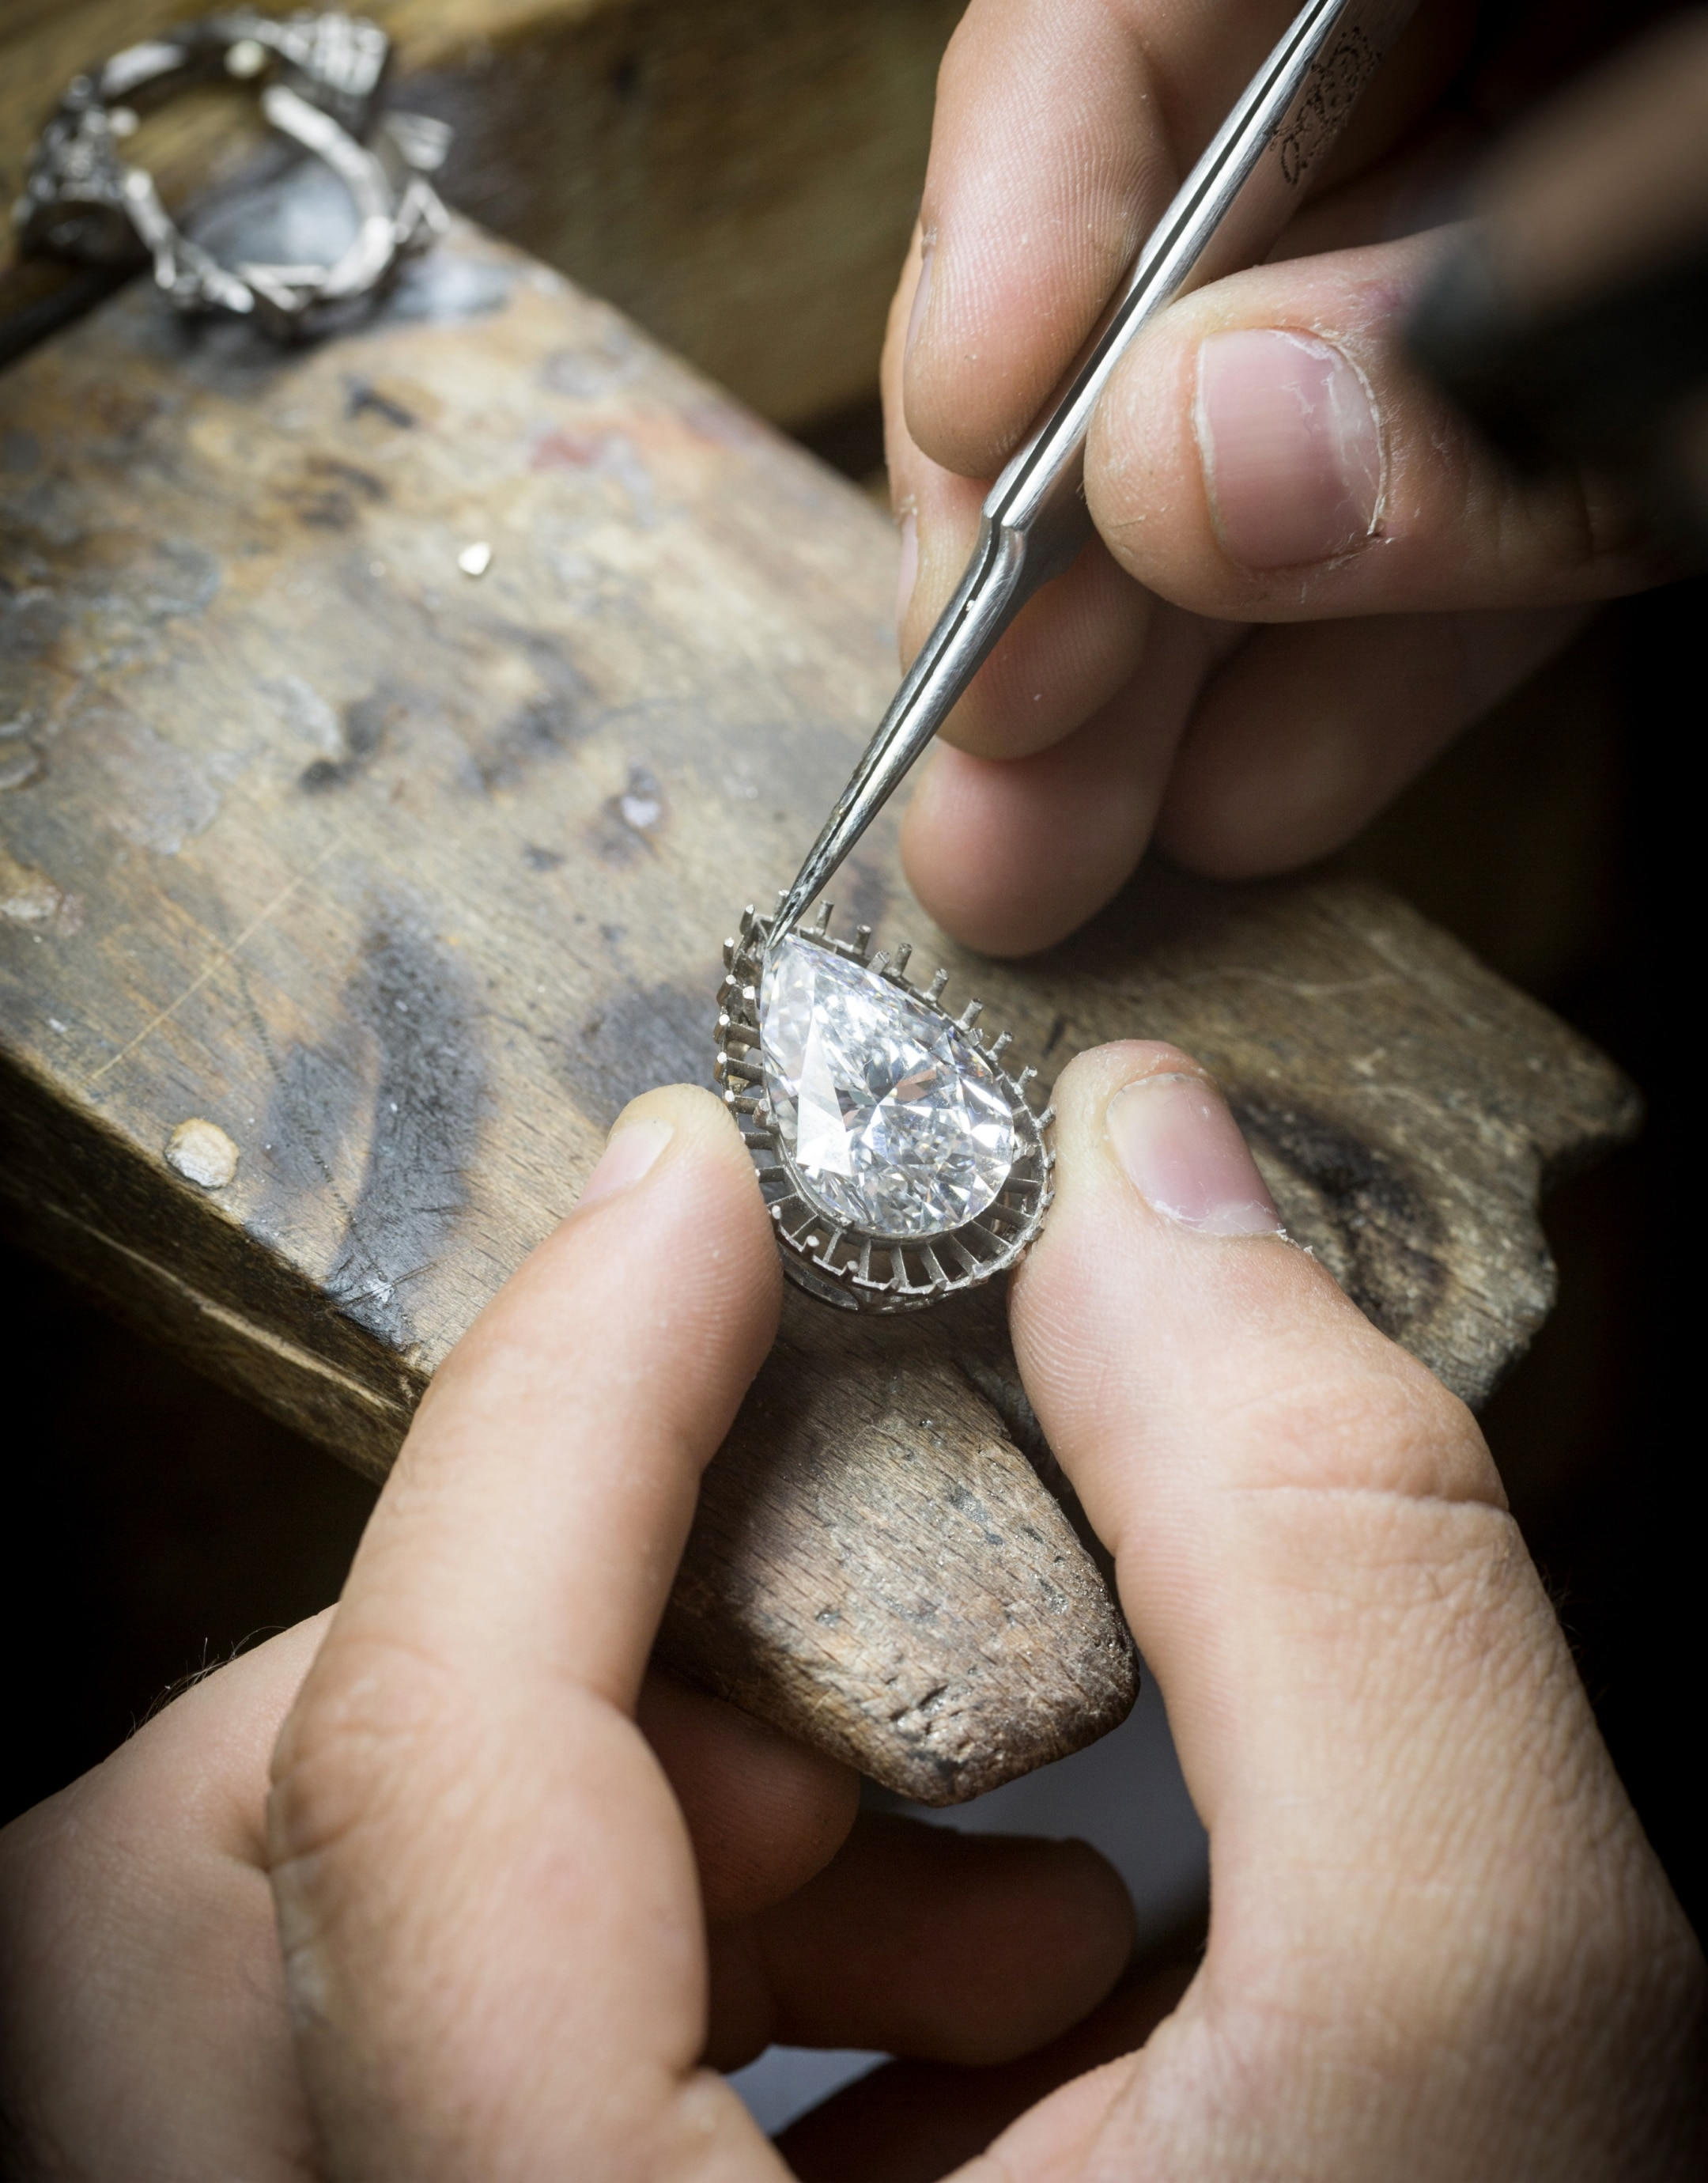 Checking the adjustment of the center diamond on the motif, Bleu Absolu necklace.